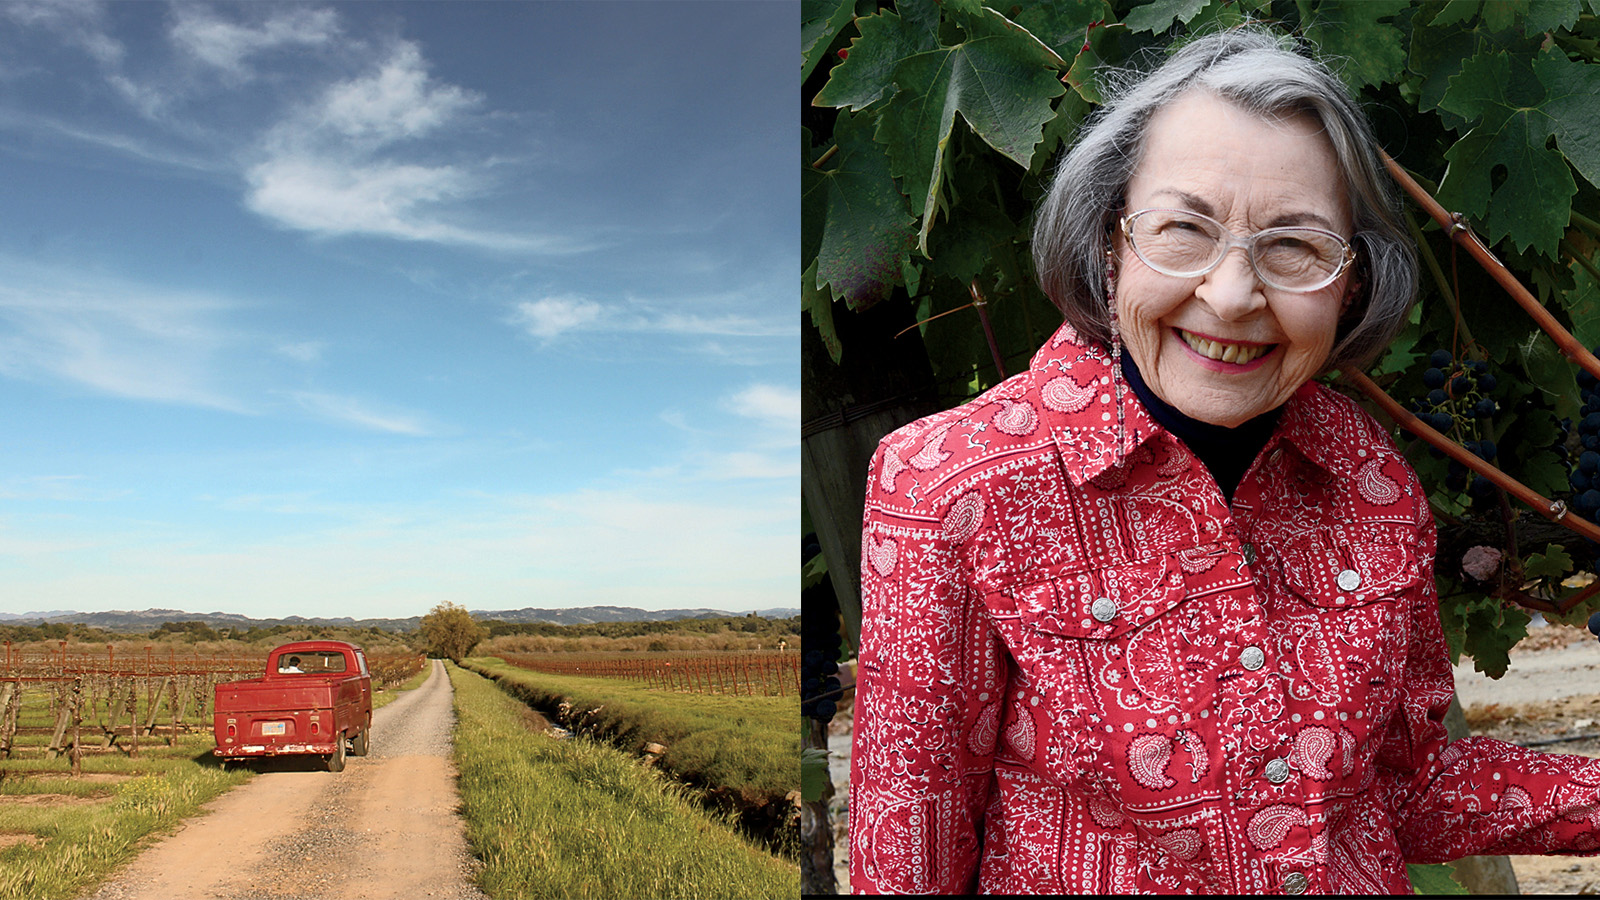 The Godmother of Pinot Noir